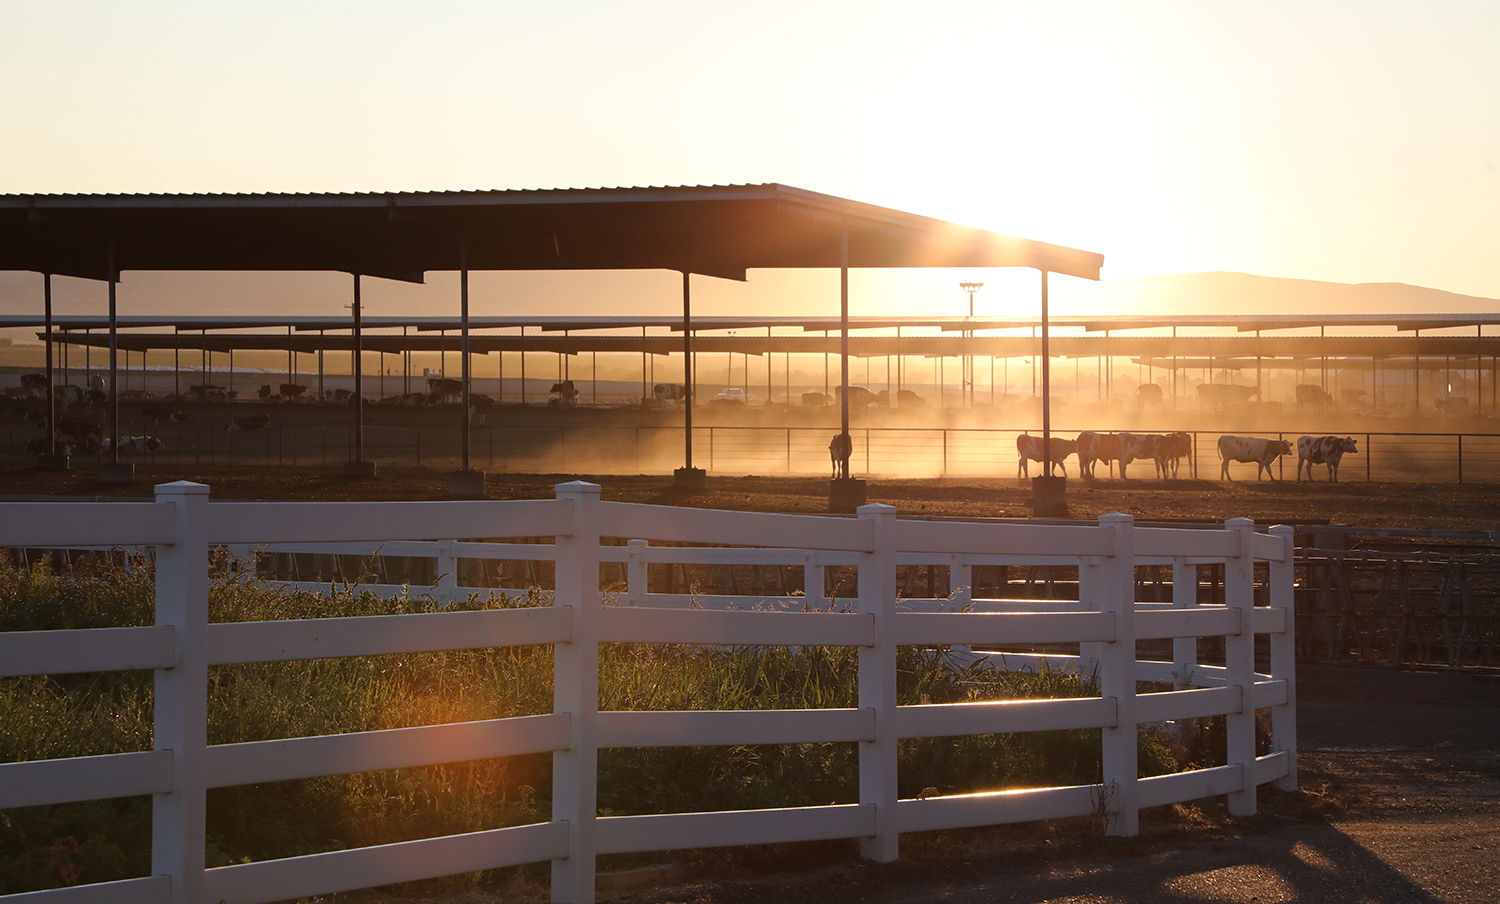 A herd of cows in the distance at sunrise